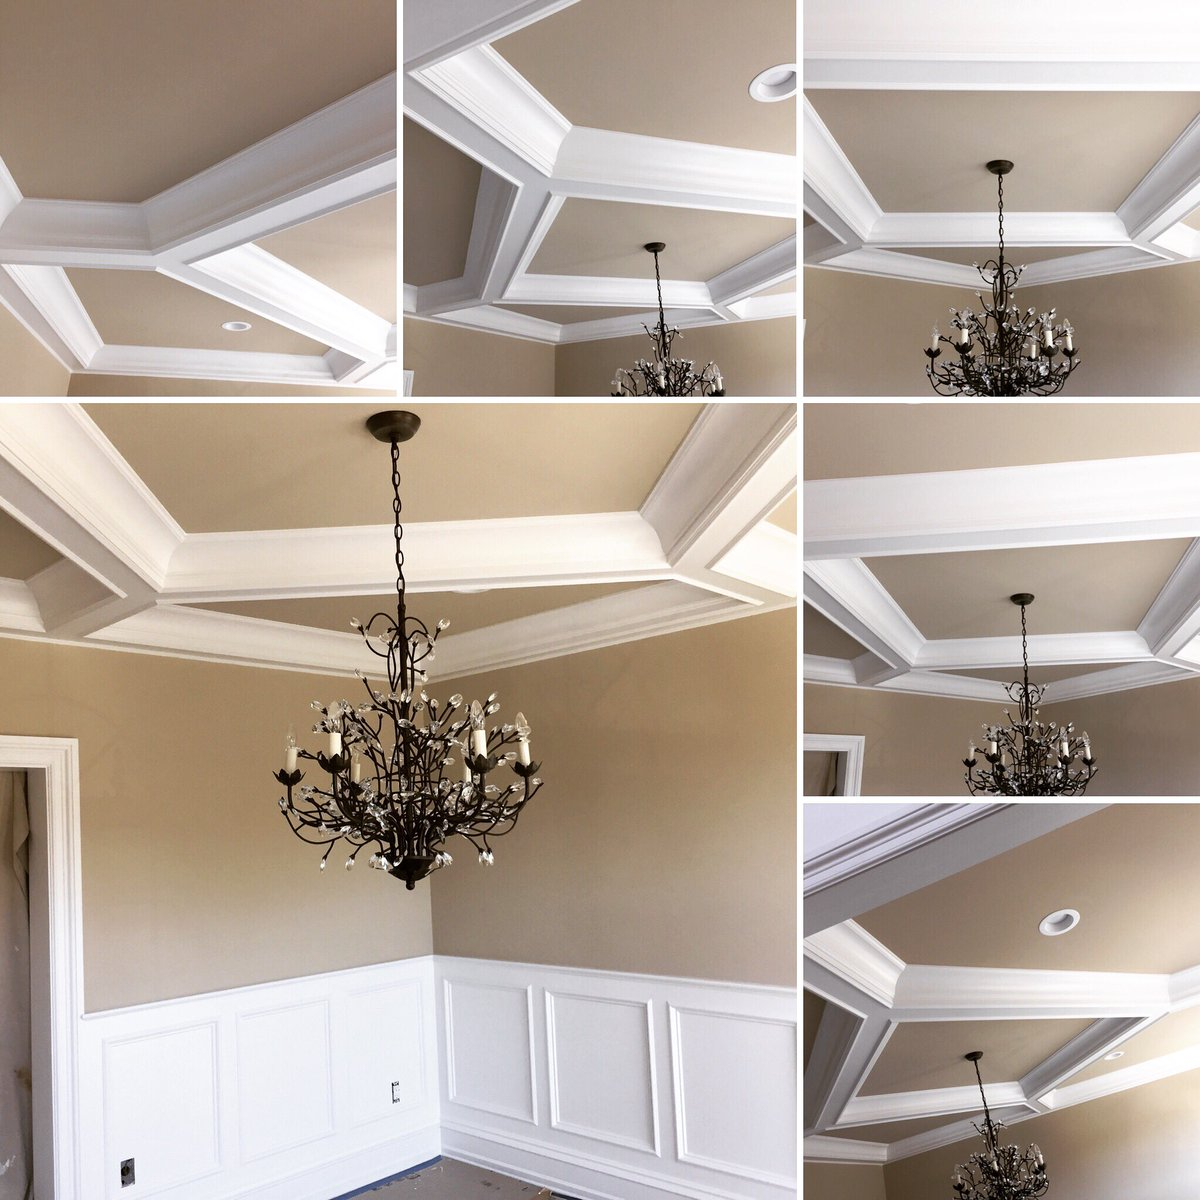 Residential custom paint project! #southjersey #painting #newjersey #jerseyshore #HomeImprovement #realestate #interior #design #decor #idea<br>http://pic.twitter.com/P9rrVPSHPM